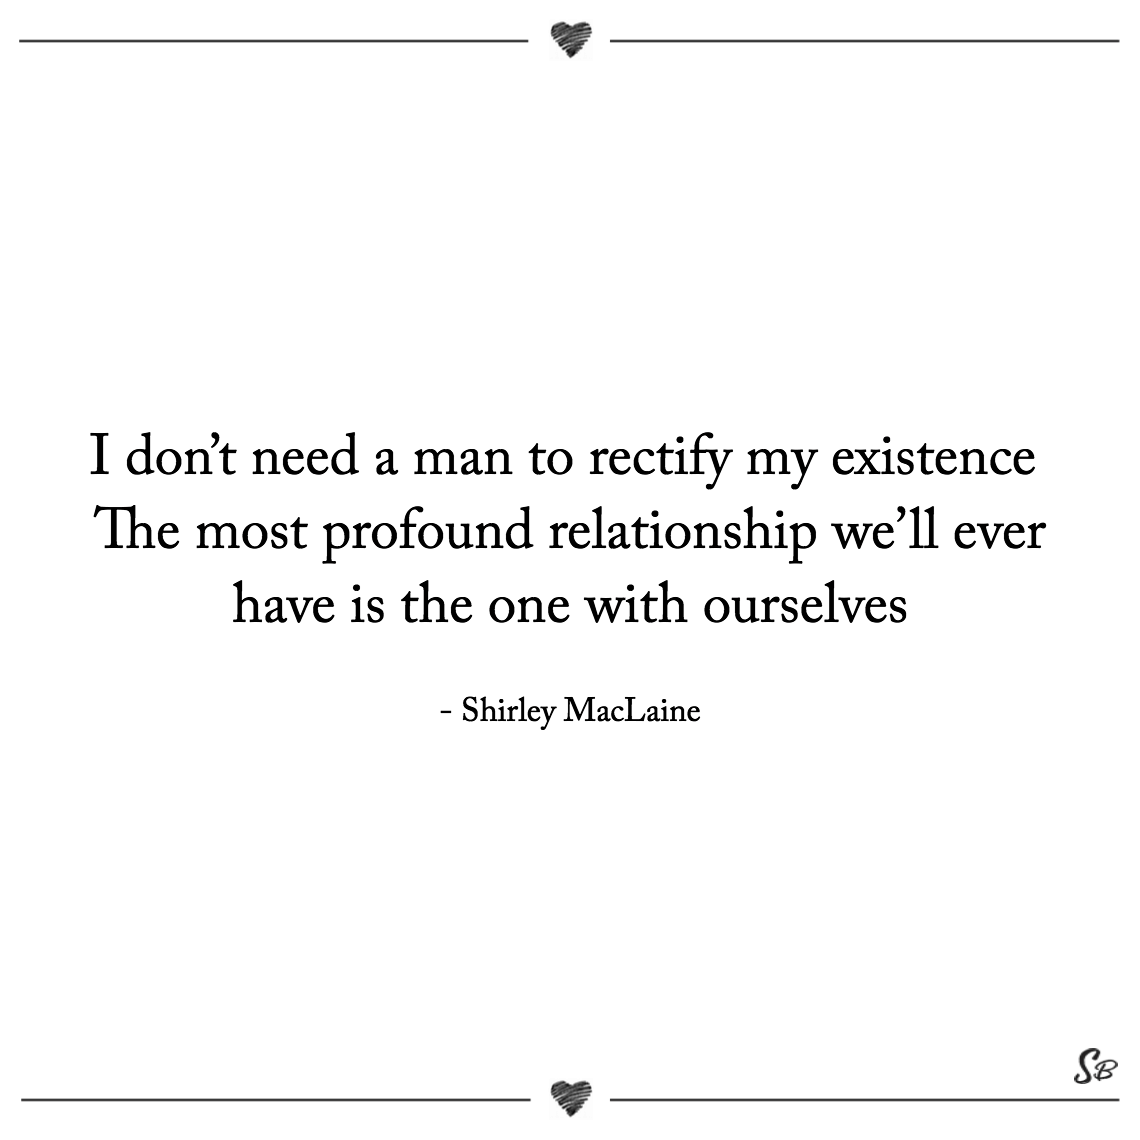 I don't need a man to rectify my existence the most profound relationship we'll ever have is the one with ourselves shirley maclaine